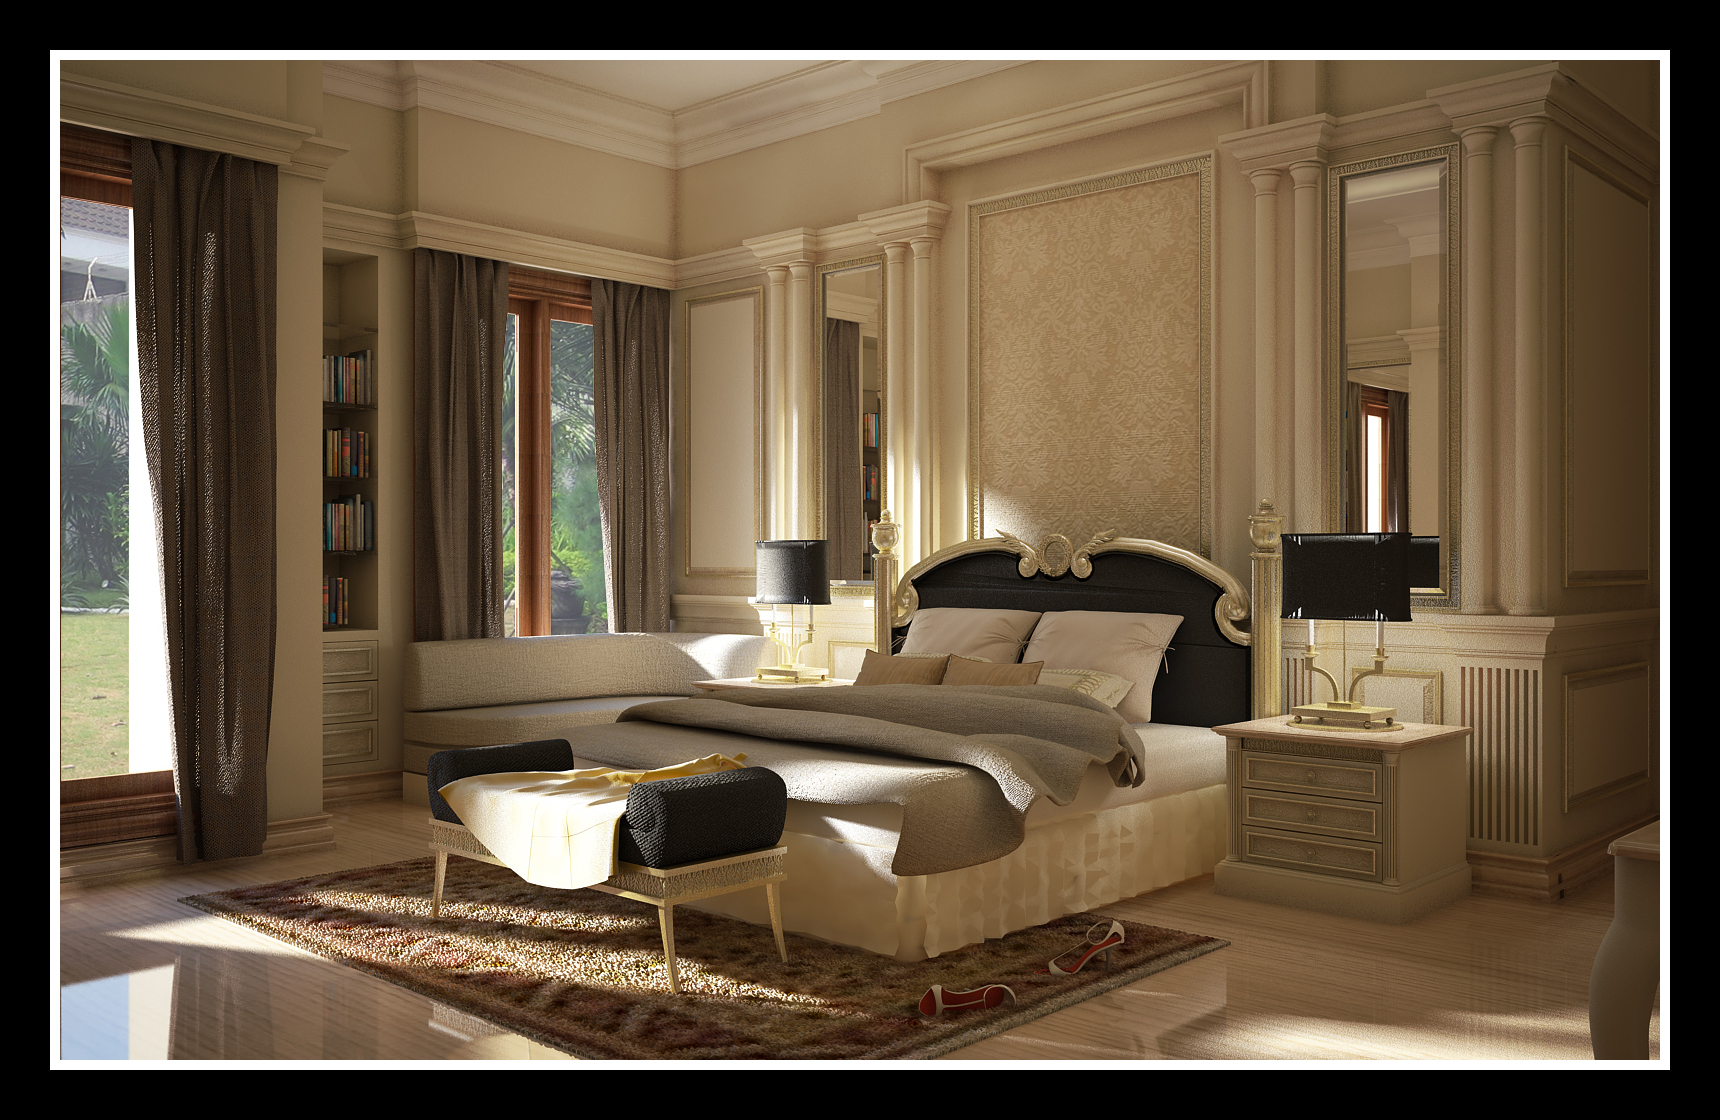 Interior design 3d home designer - Magnificent luxury bedroom design ideas ...